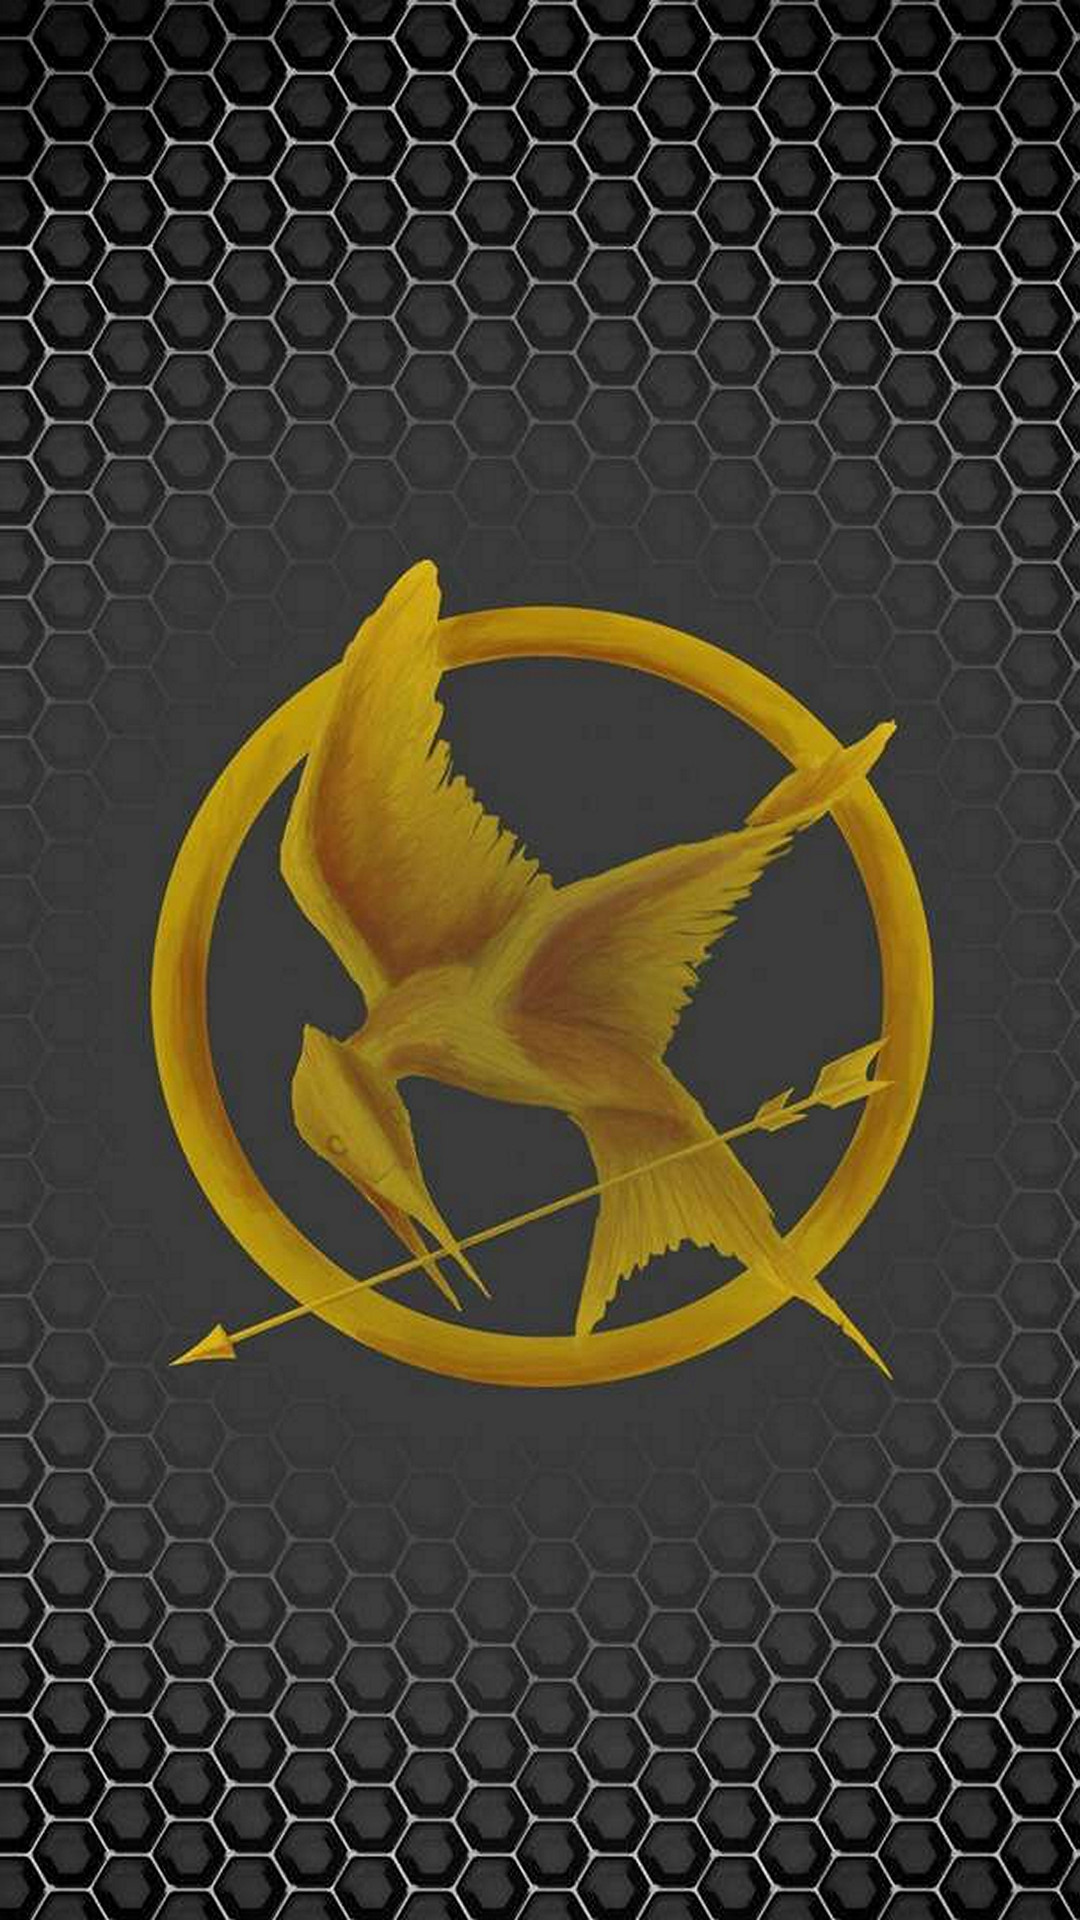 Res: 1080x1920, Mockingjay, Catching Fire, The Hunger Games, Entertainment Backgrounds,  wallpapers for Samsung Galaxy